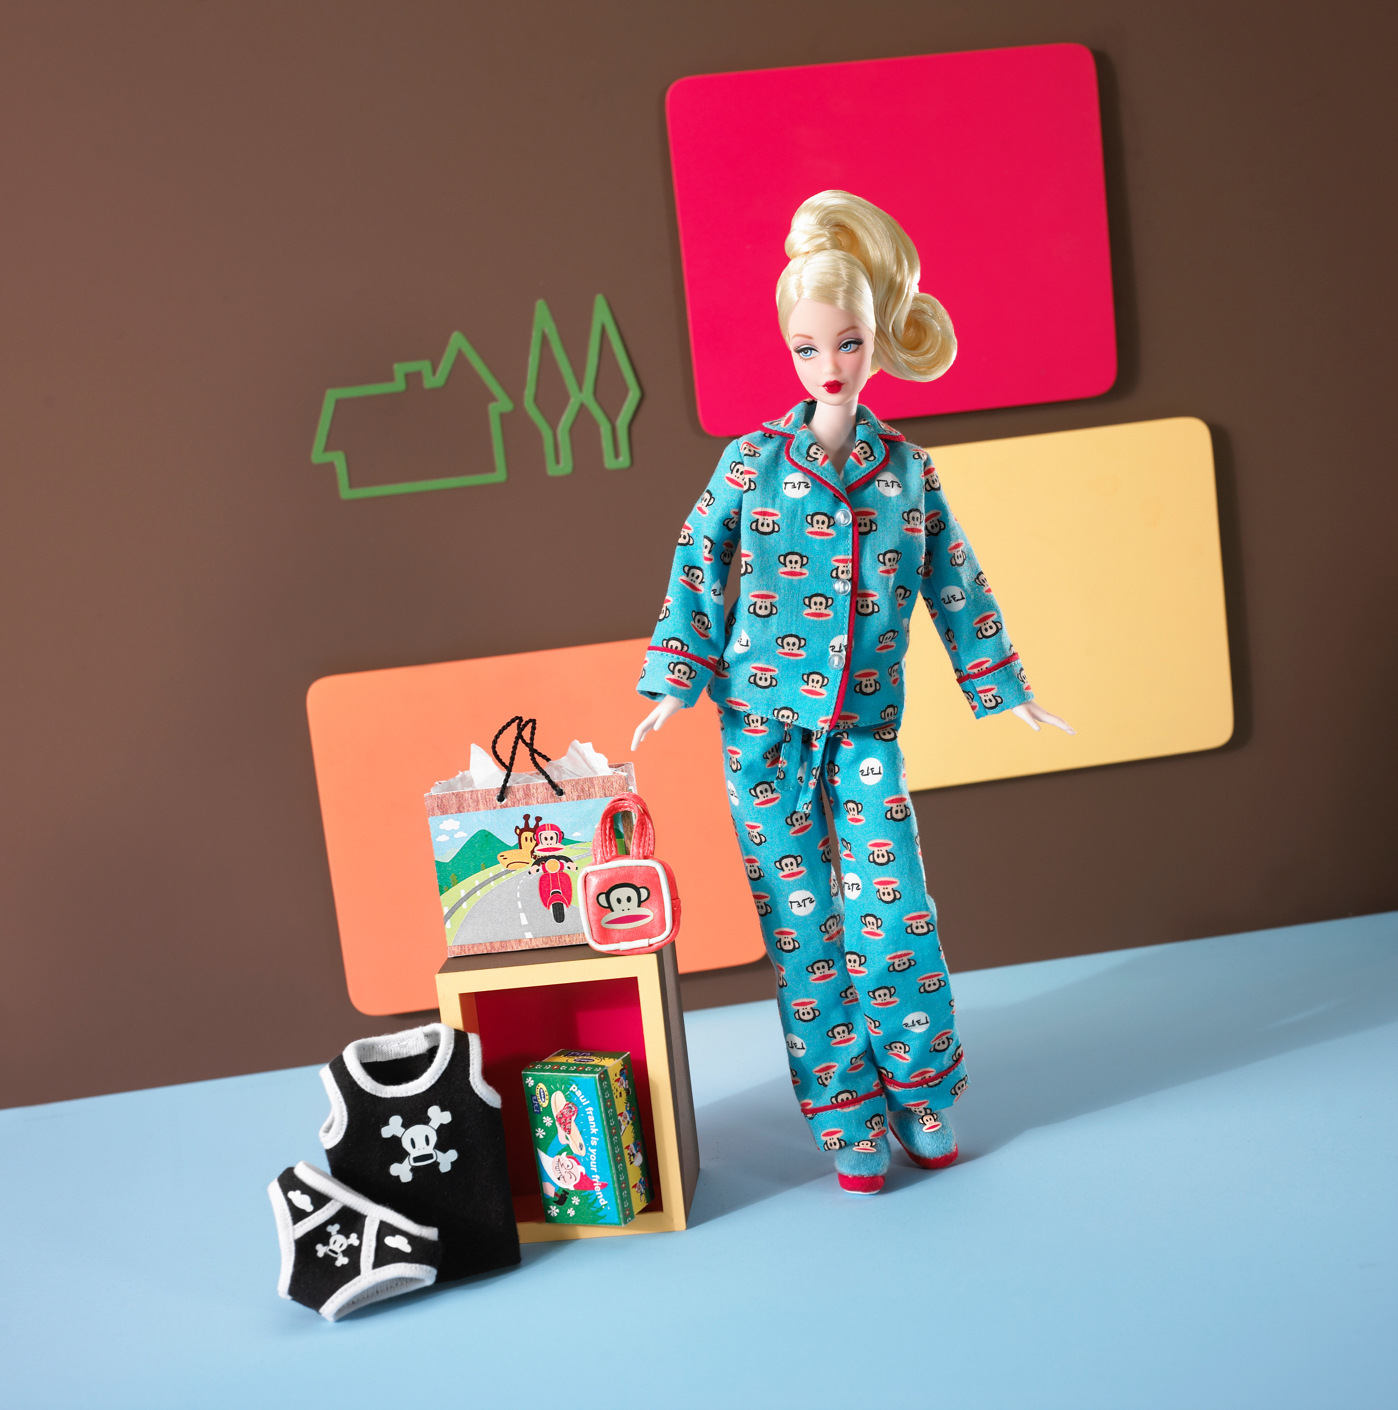 The Paul Frank Barbie Doll, released in 2004.